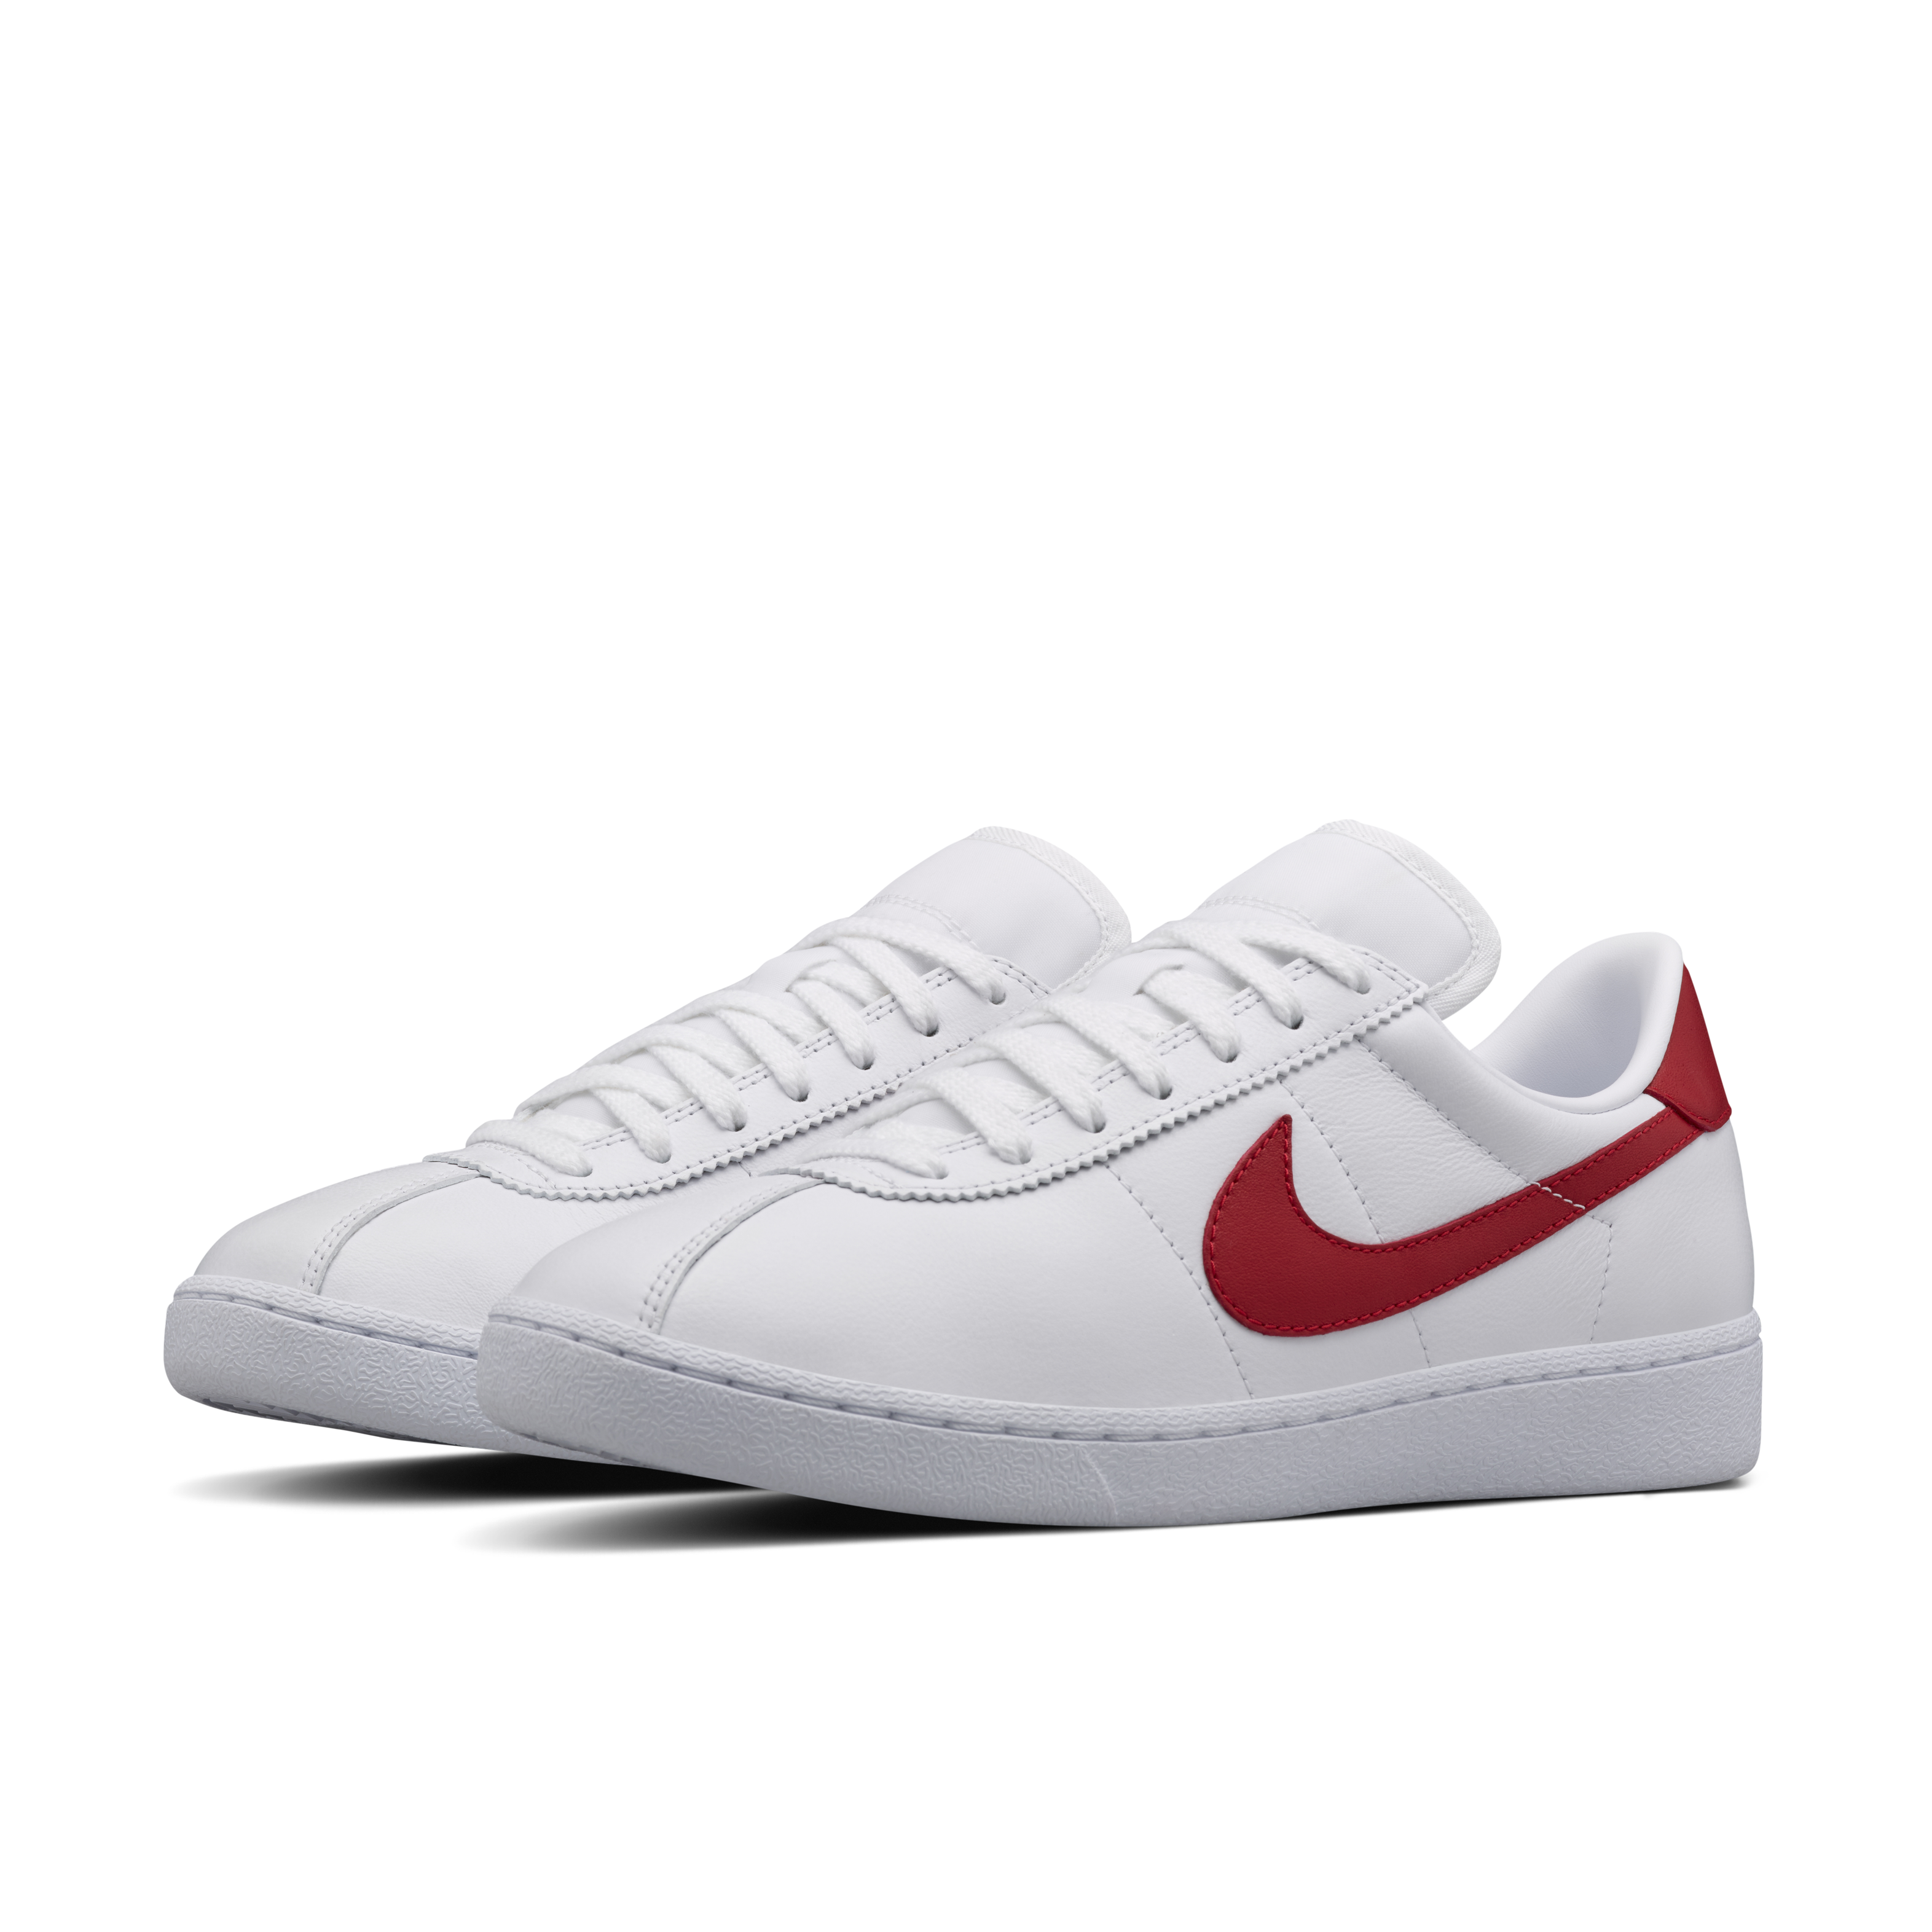 Transparent nike shoe. Red and white shoes